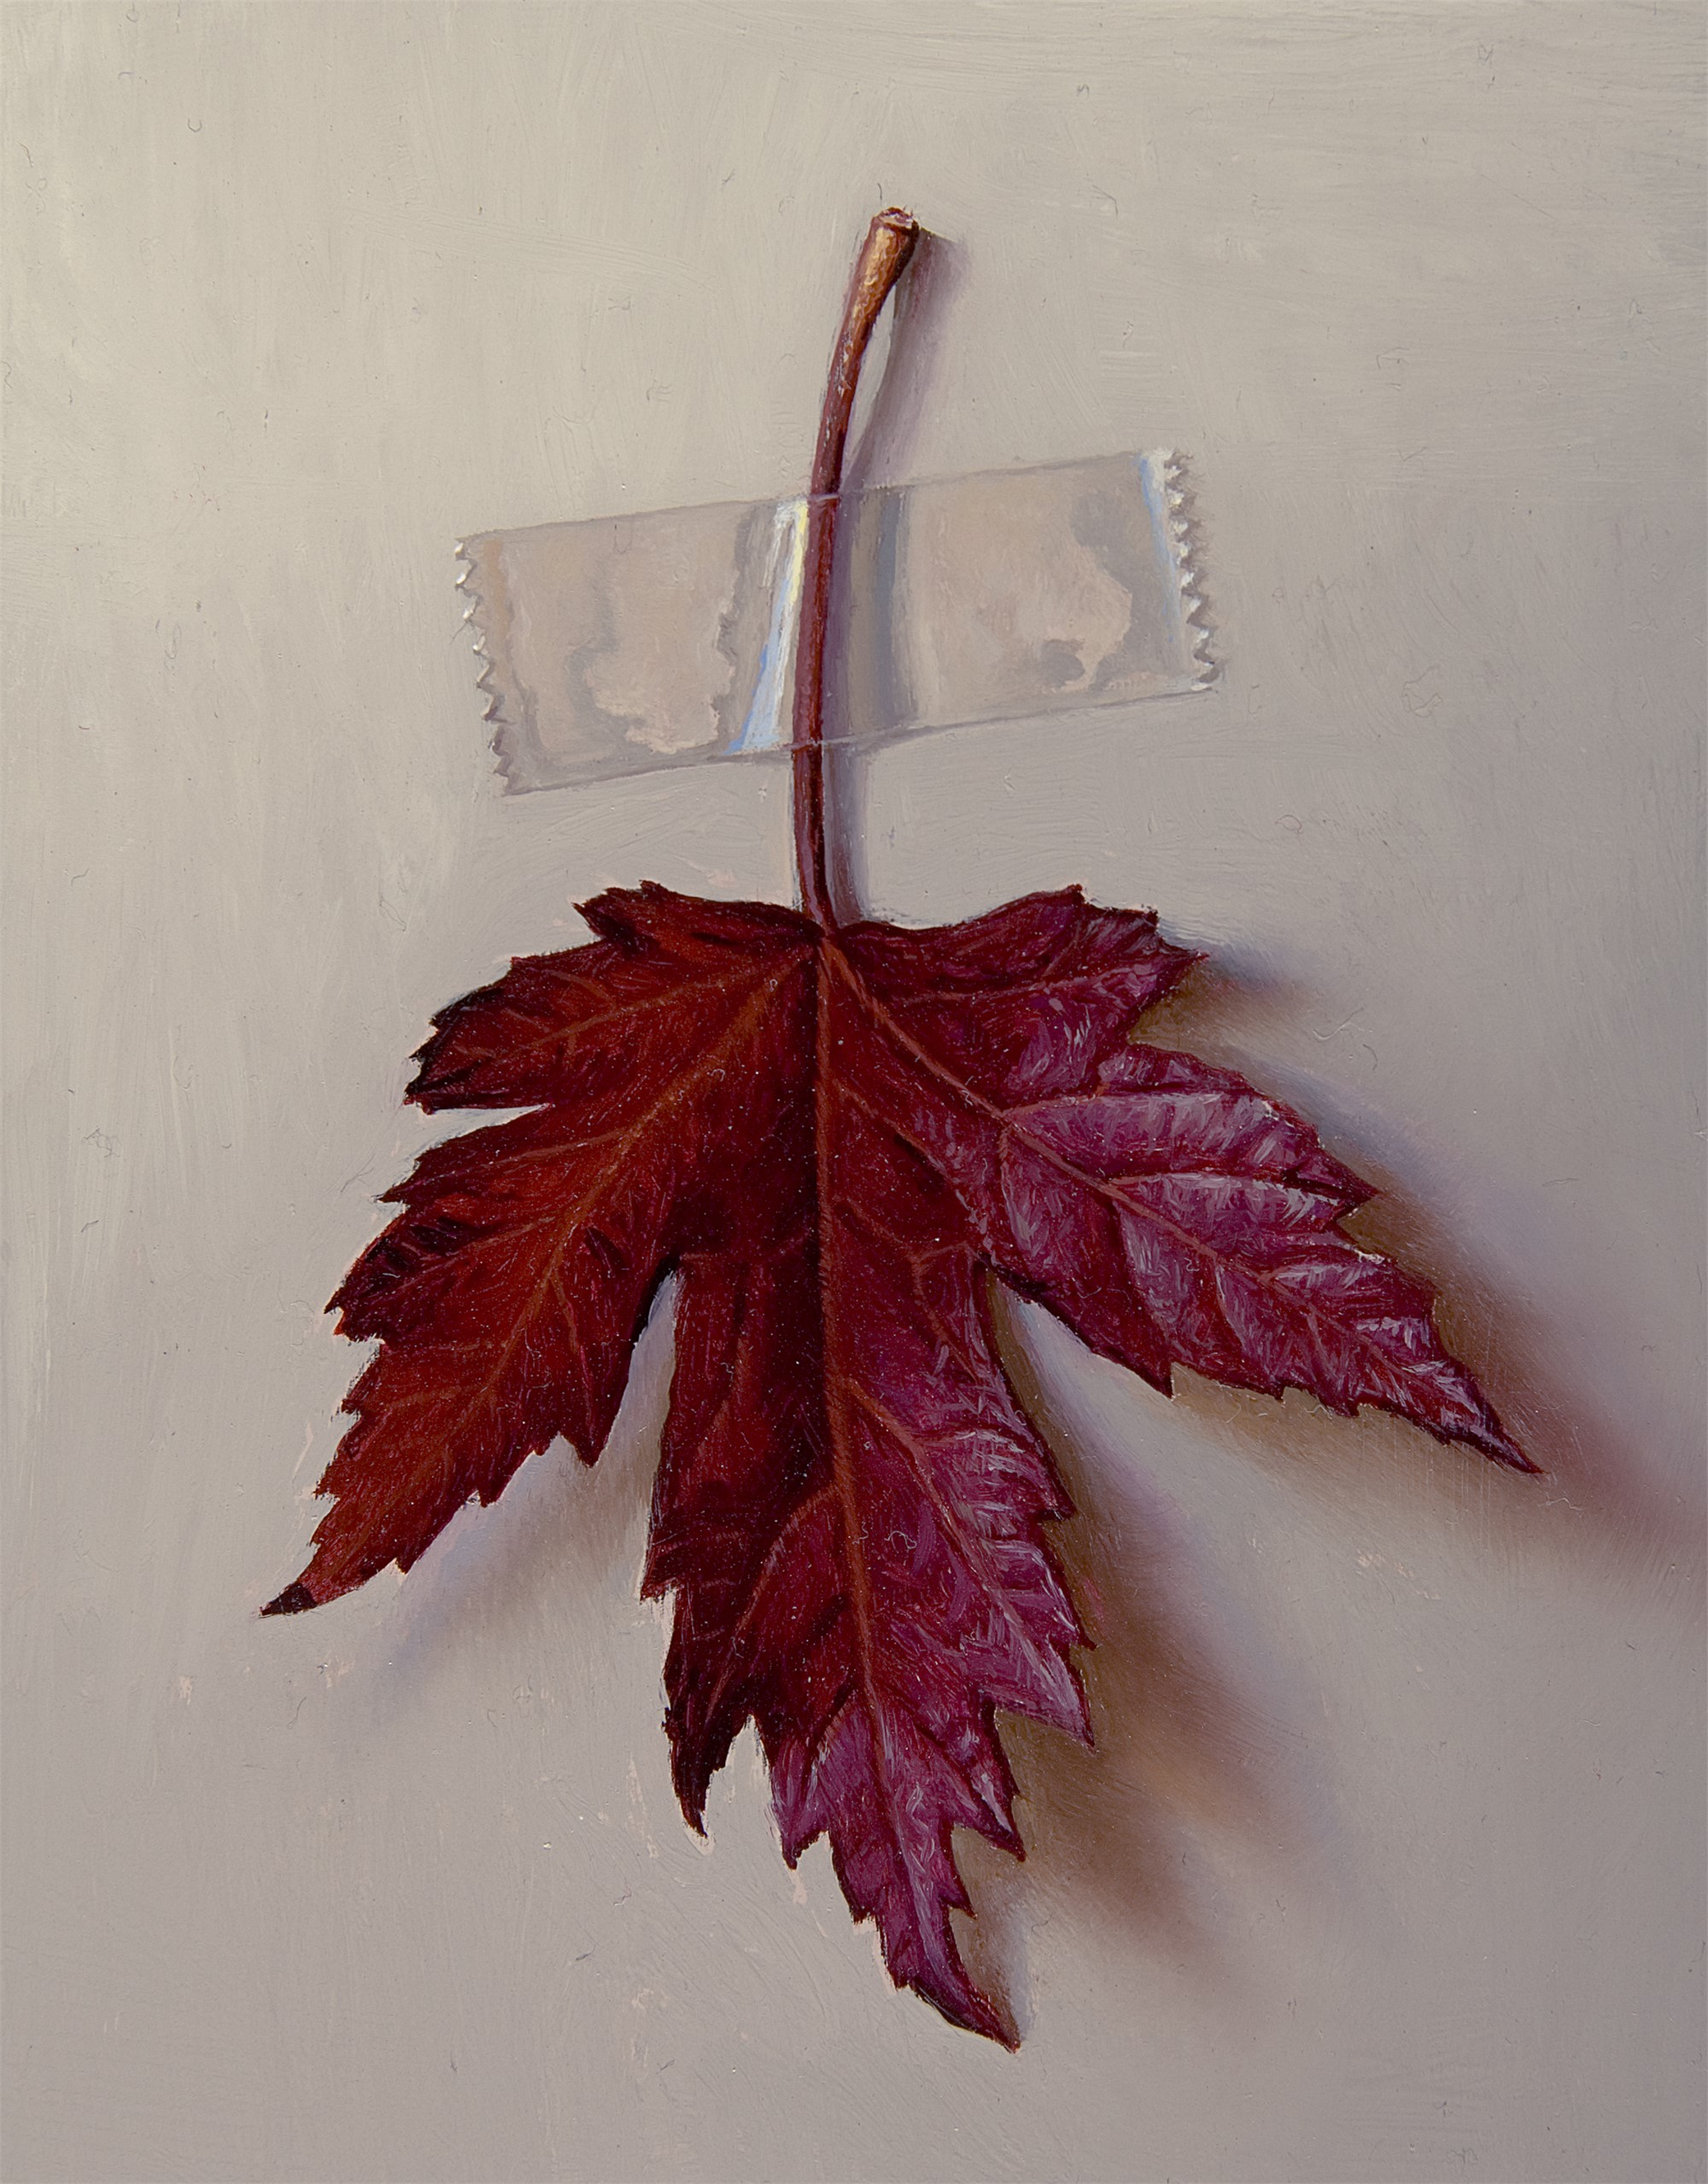 Red Maple Leaf by Scott Fraser